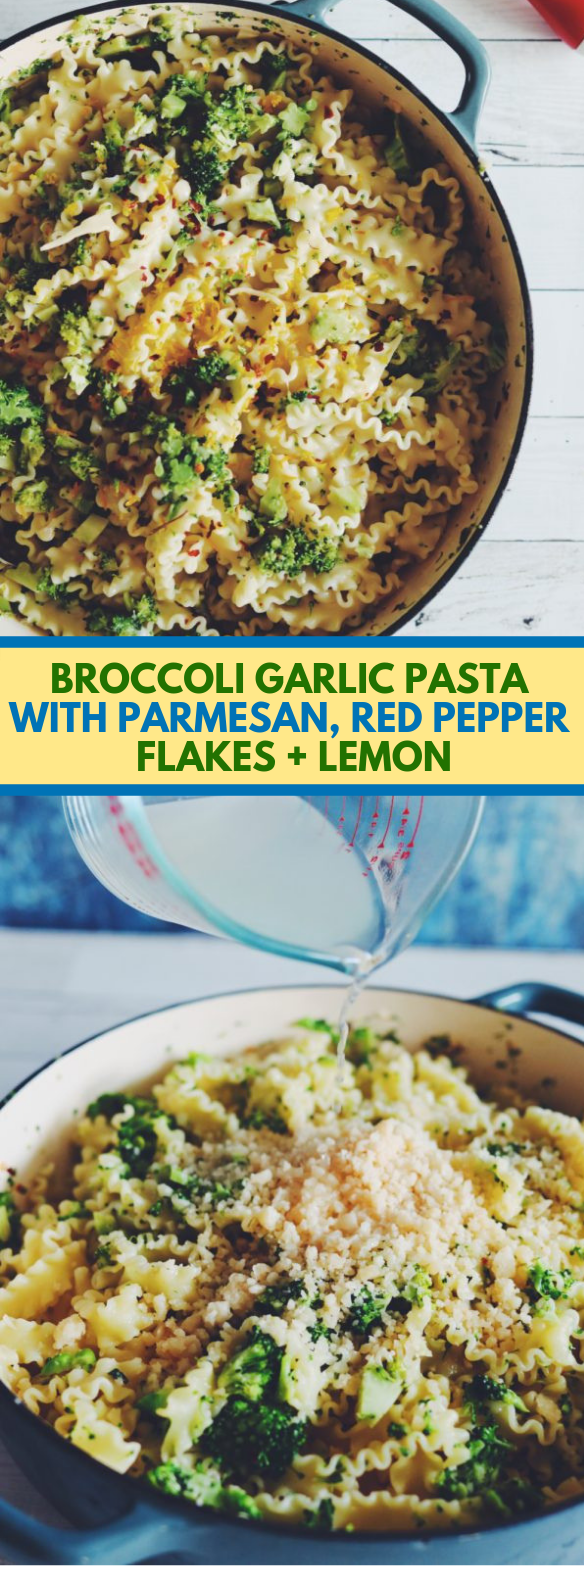 BROCCOLI GARLIC PASTA WITH PARMESAN, RED PEPPER FLAKES + LEMON #vegetarian #dinner